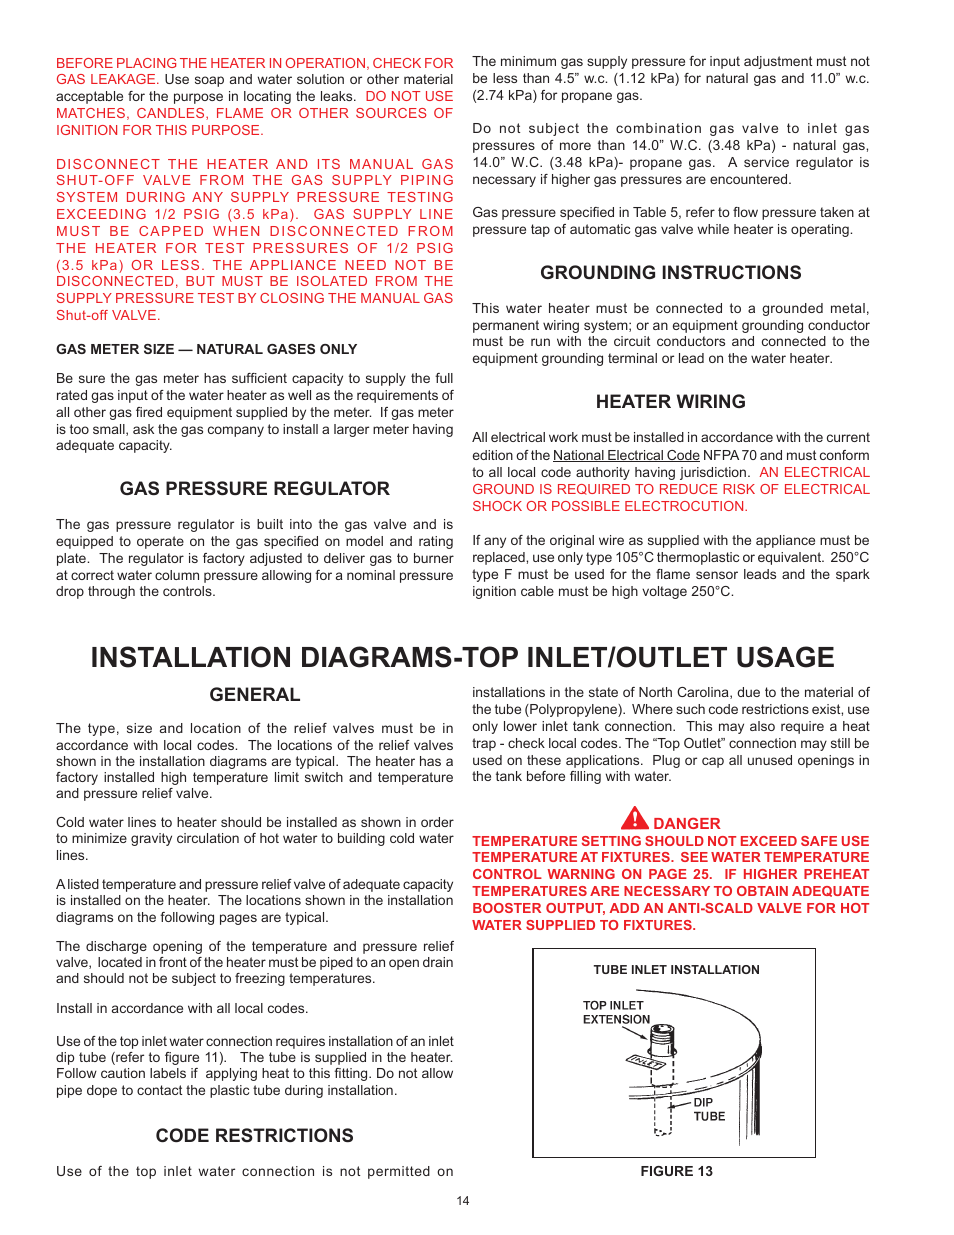 john wood commercial atmospheric vent ajwsm page14 installation diagrams top inlet outlet usage, general, code